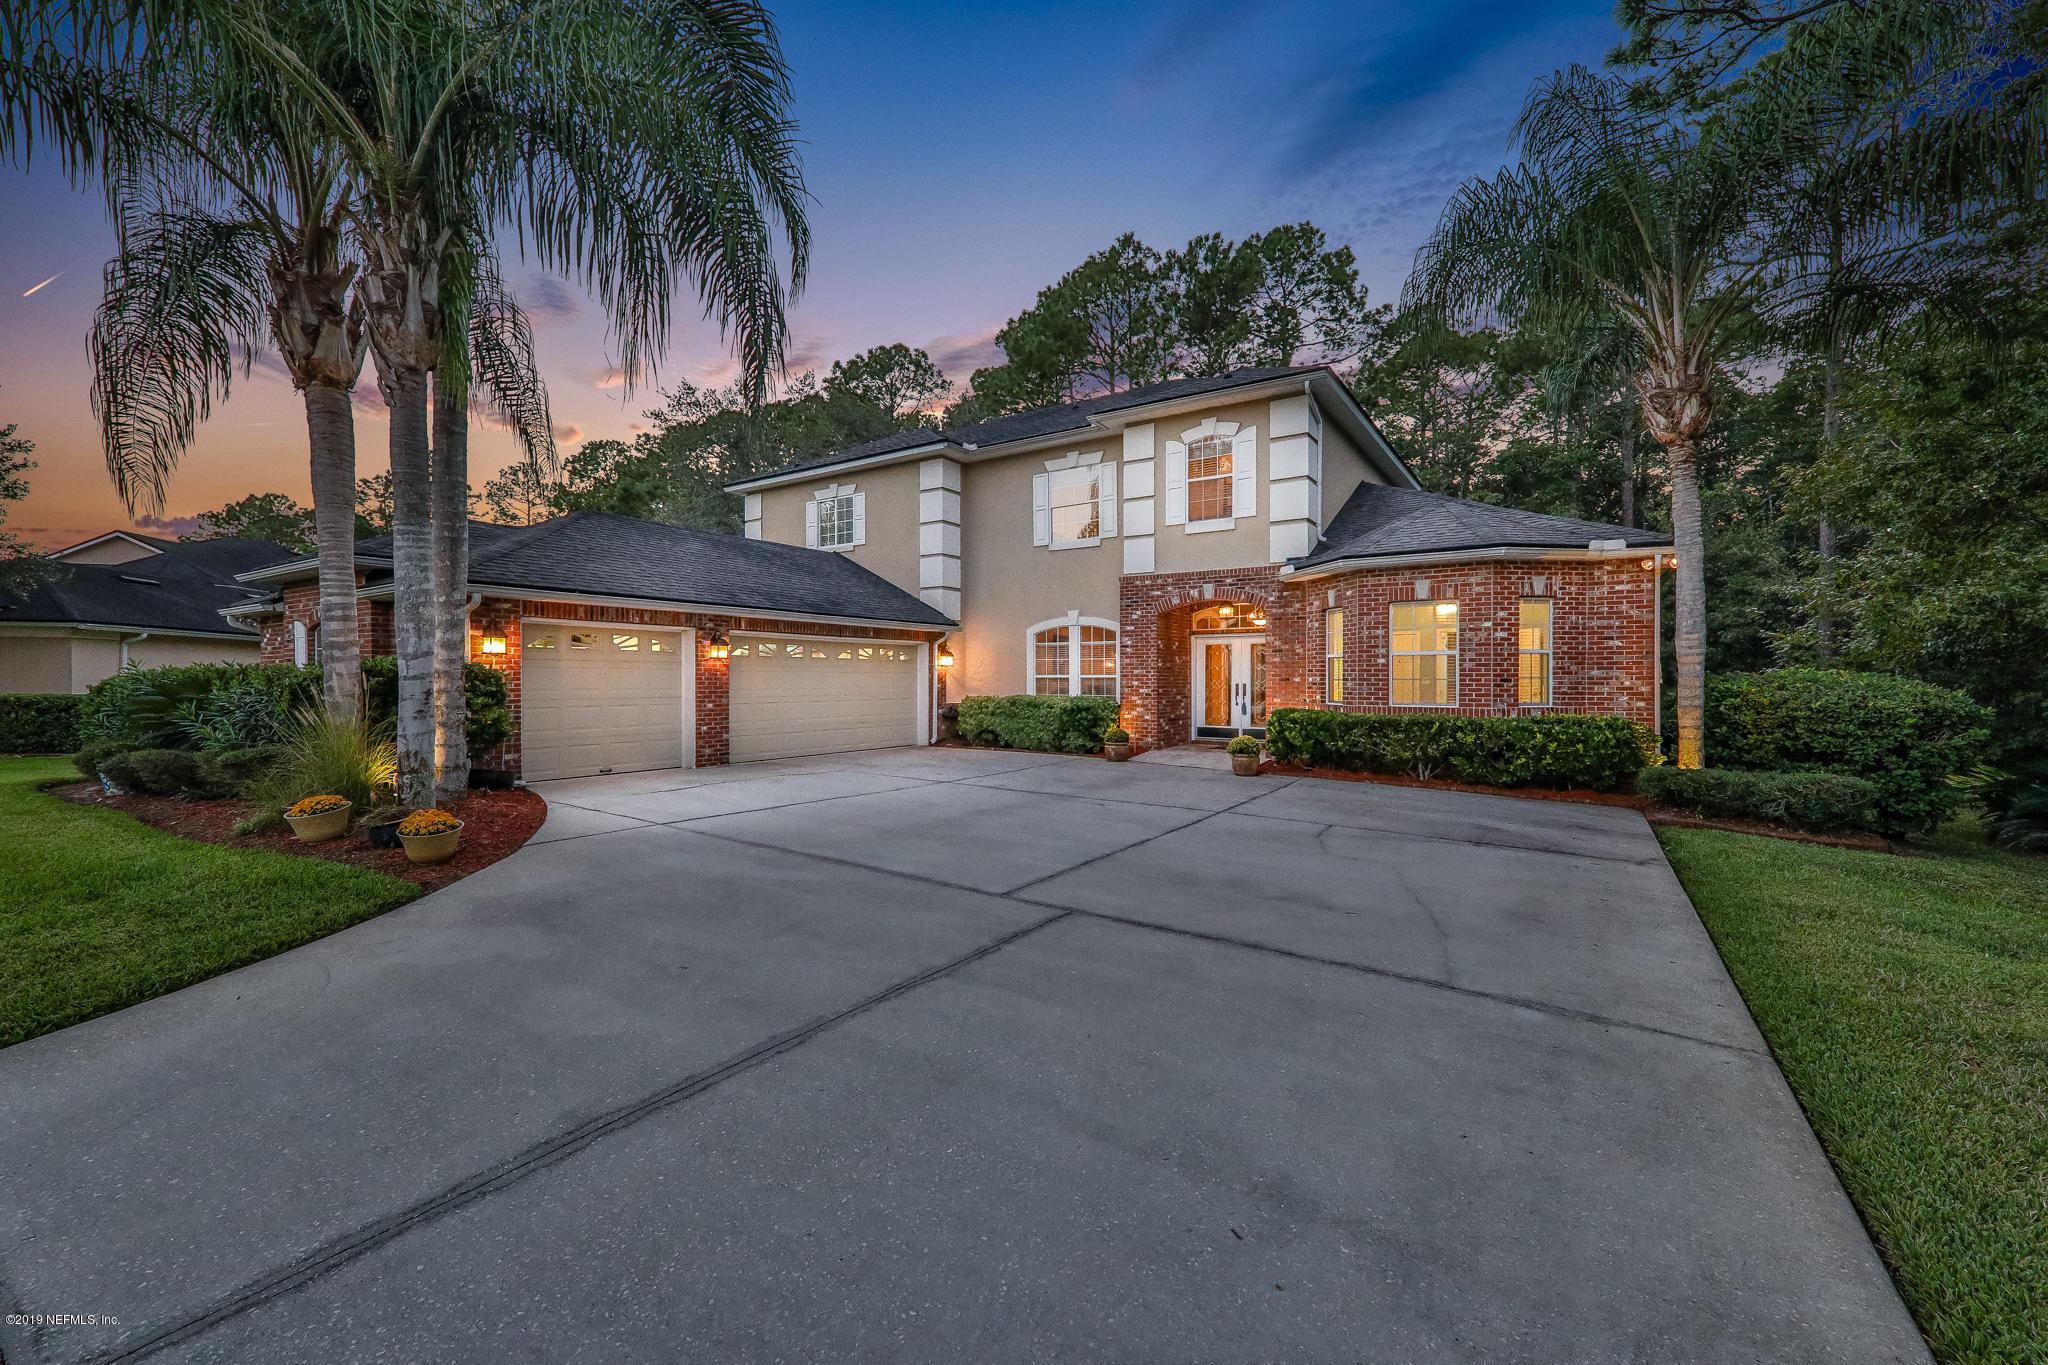 374 SWEETBRIER BRANCH, ST JOHNS, FLORIDA 32259, 6 Bedrooms Bedrooms, ,3 BathroomsBathrooms,Residential - single family,For sale,SWEETBRIER BRANCH,1020386